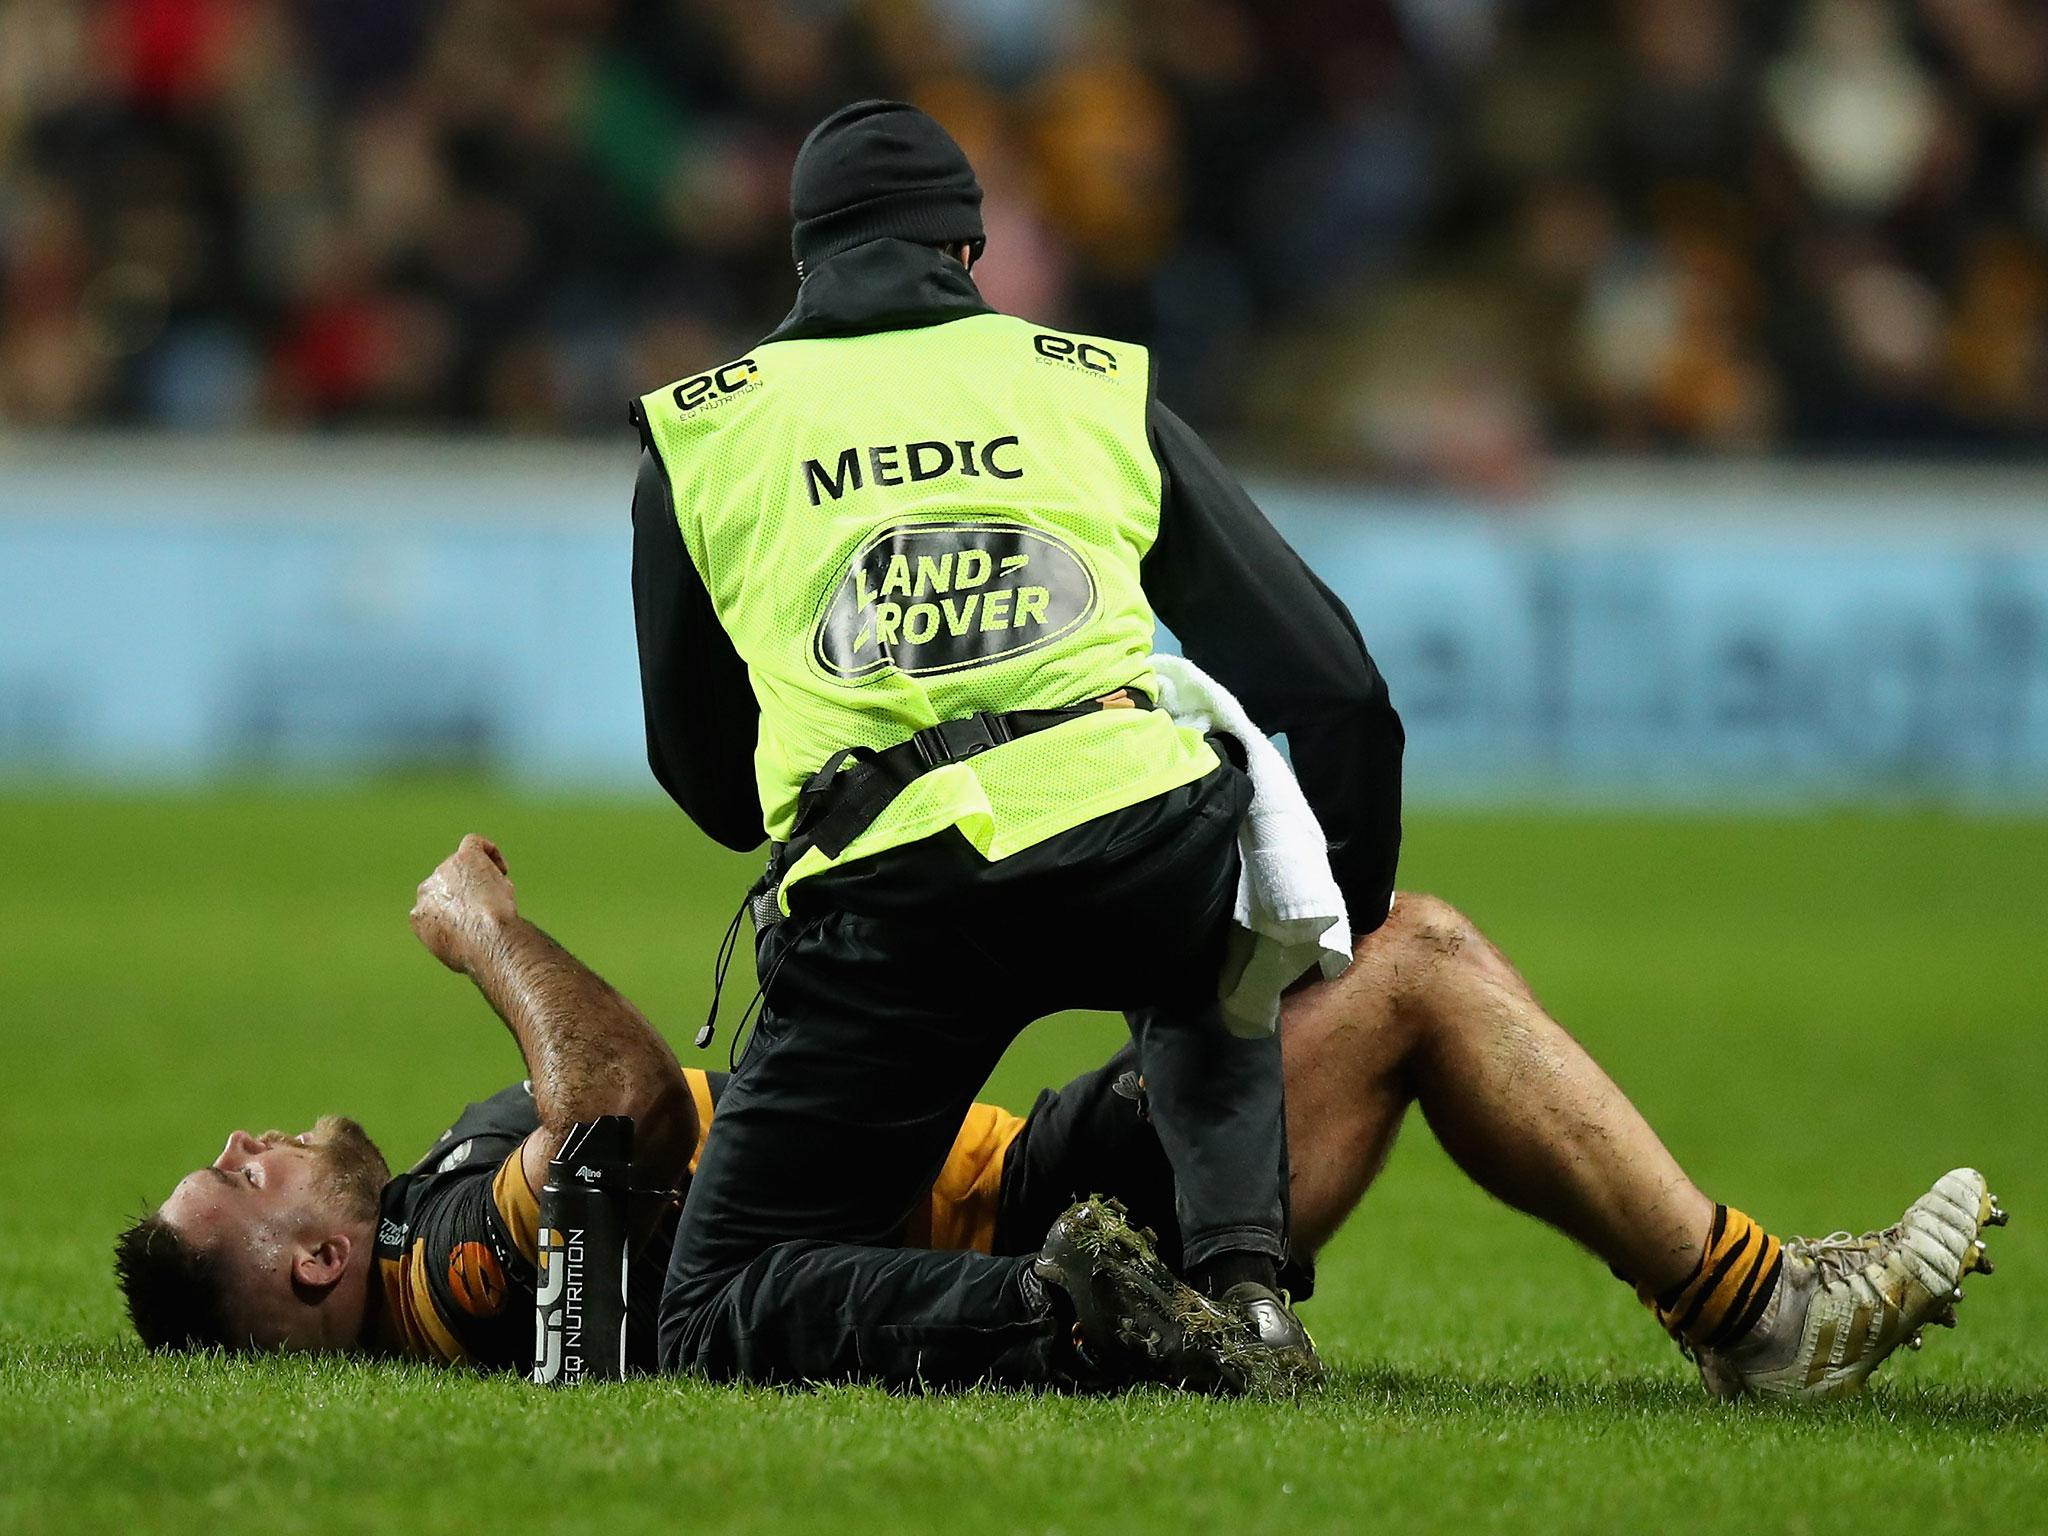 Rugby may need 'significant changes' to reverse rise in injury severity, says head of English rugby medicine